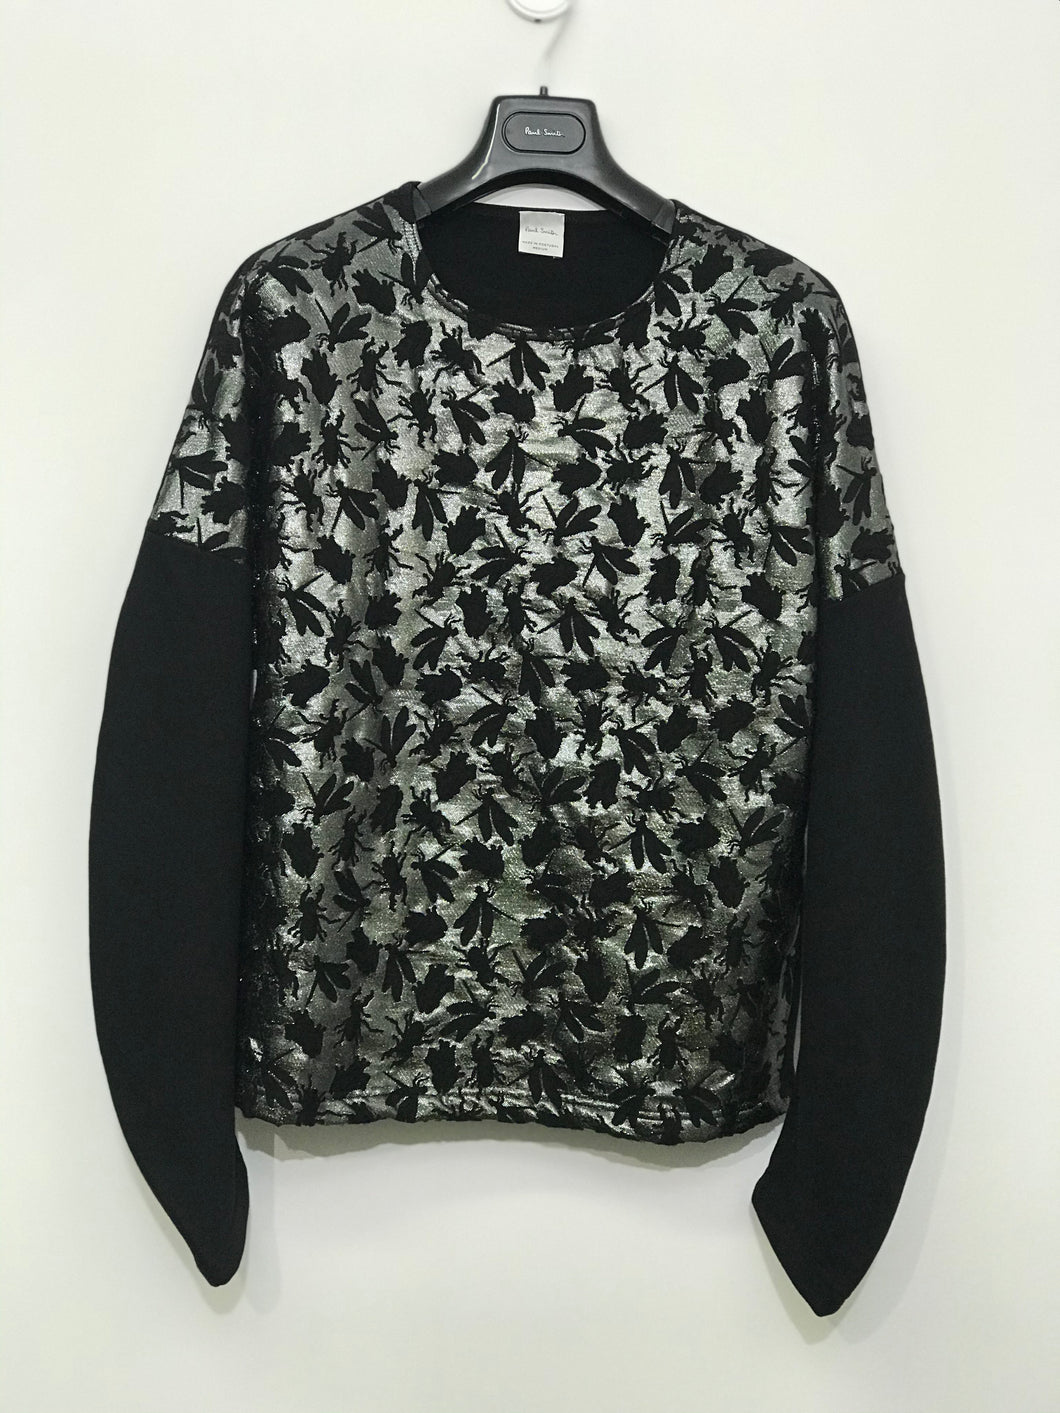 Sweat - Insectes Noir - Paul Smith - Femme